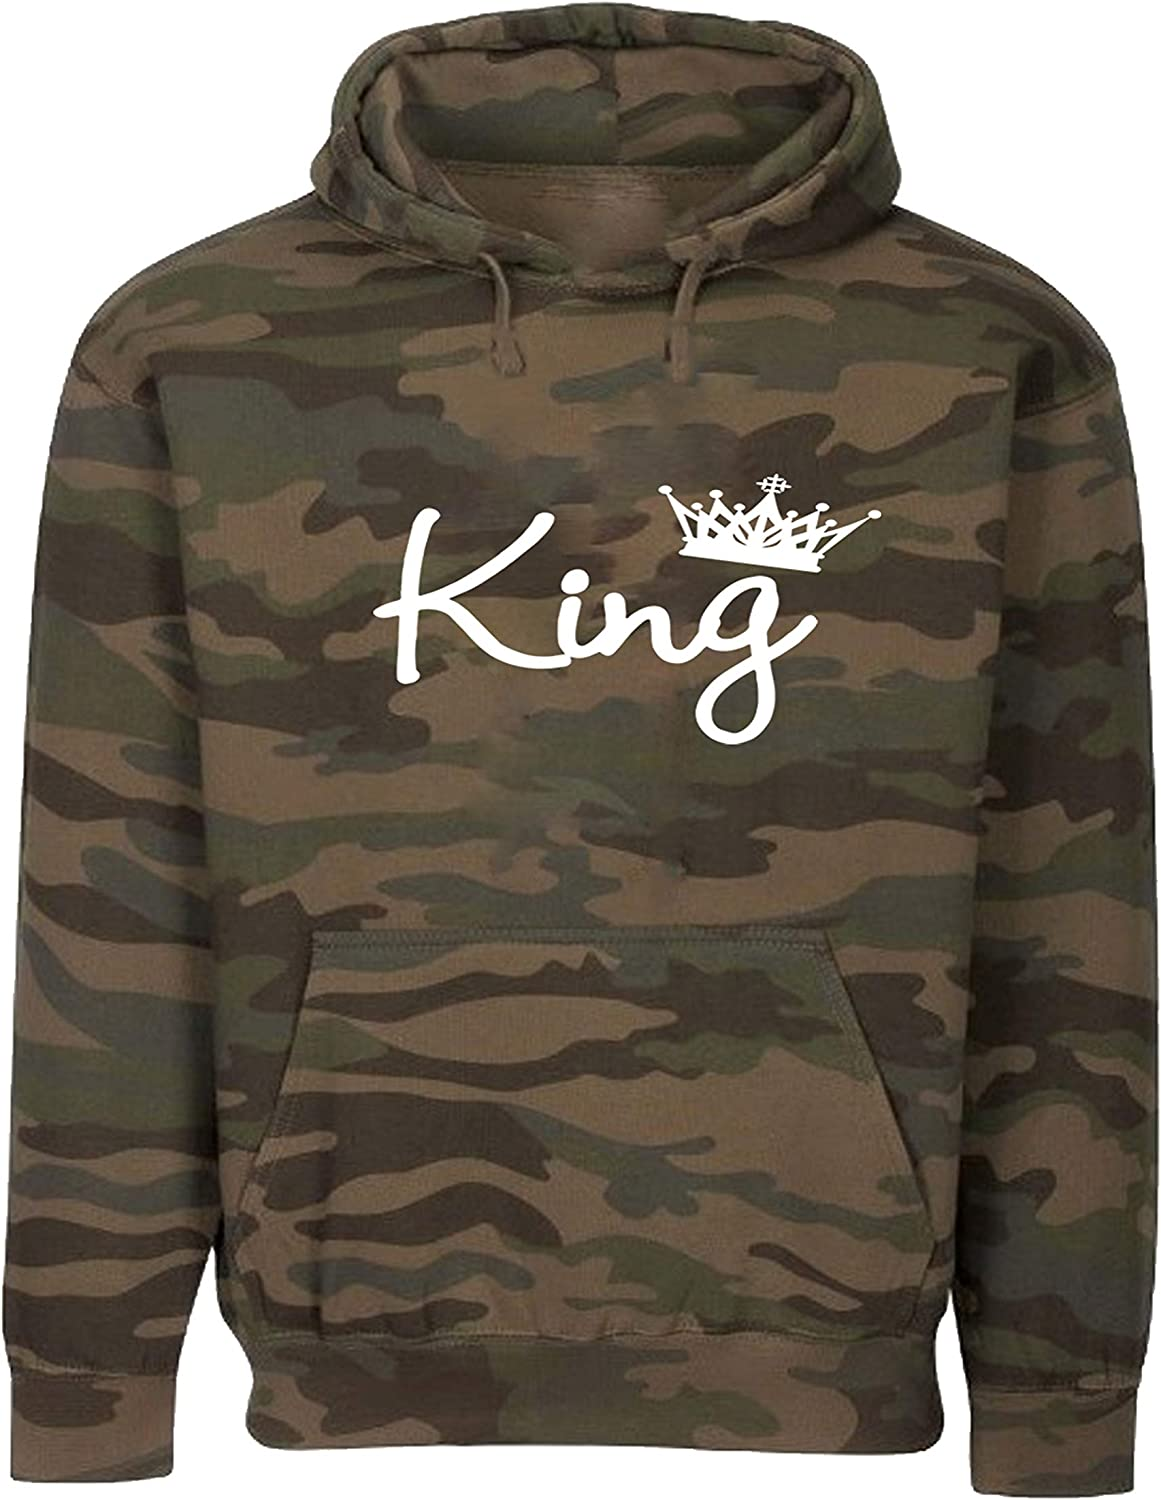 King Queen Couple Hoodies King and Queen Matching Tracksuits His and Hers Matching Hoodies Olive Queen Pant X-Large